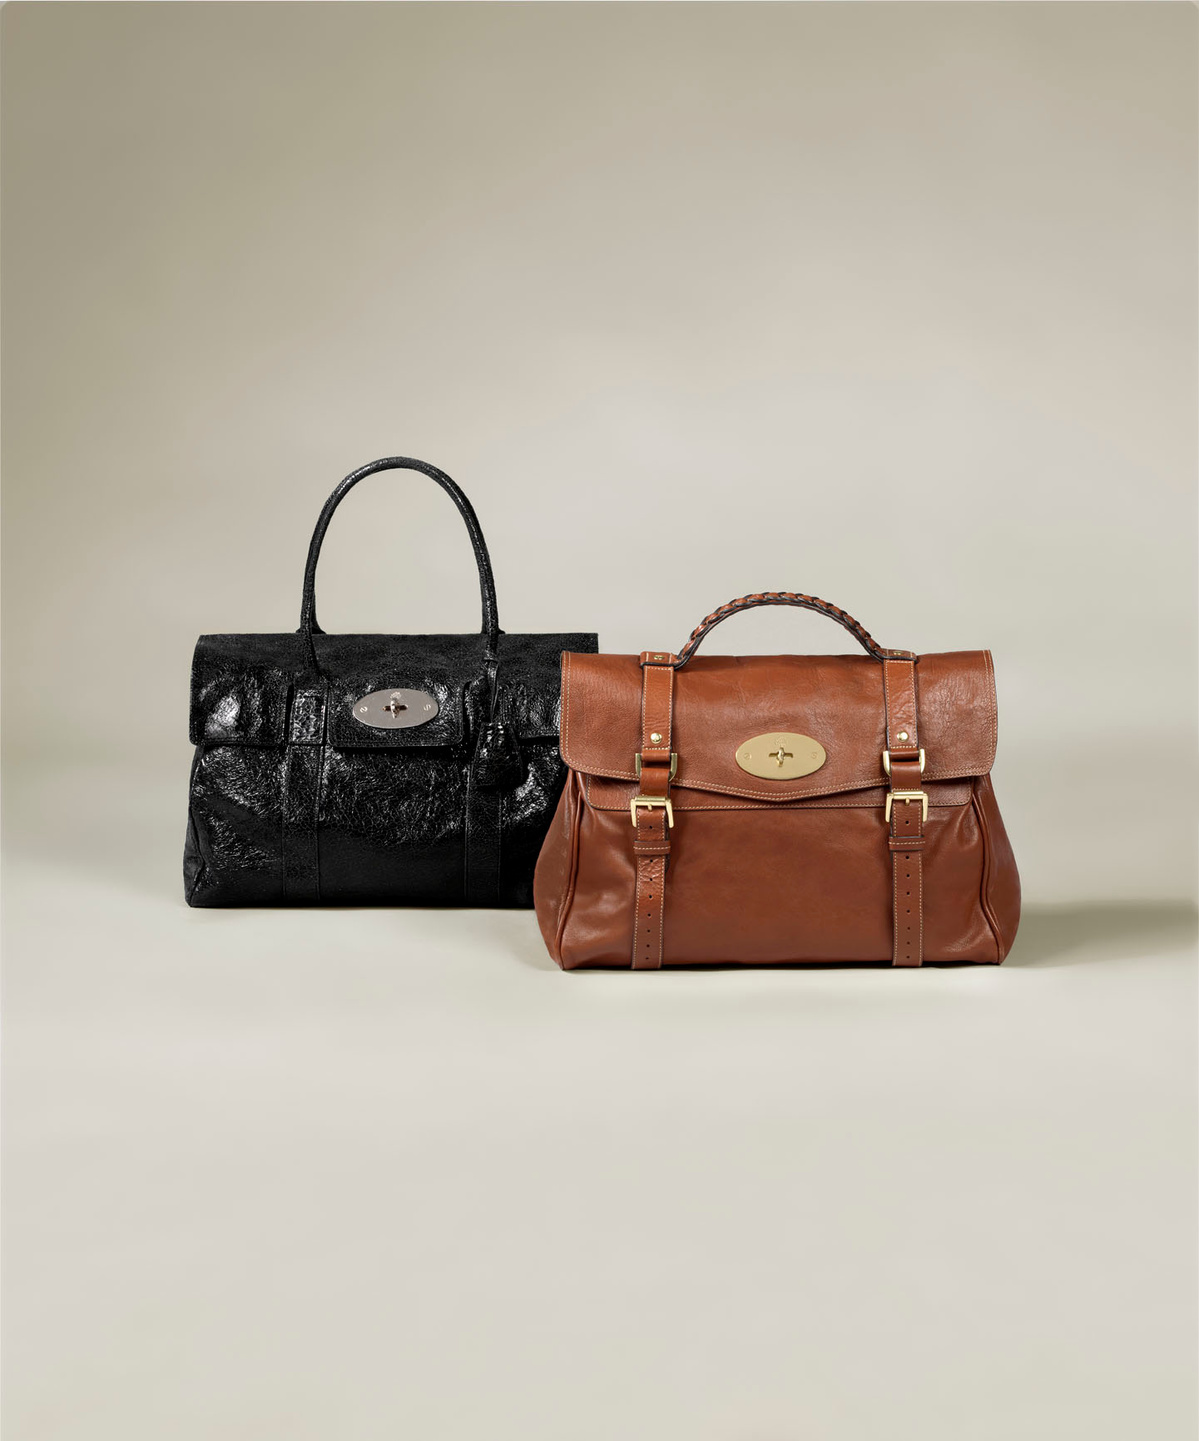 Mulberry Alexa and Bayswater owned by Kate Moss and Alexa Chung, DR